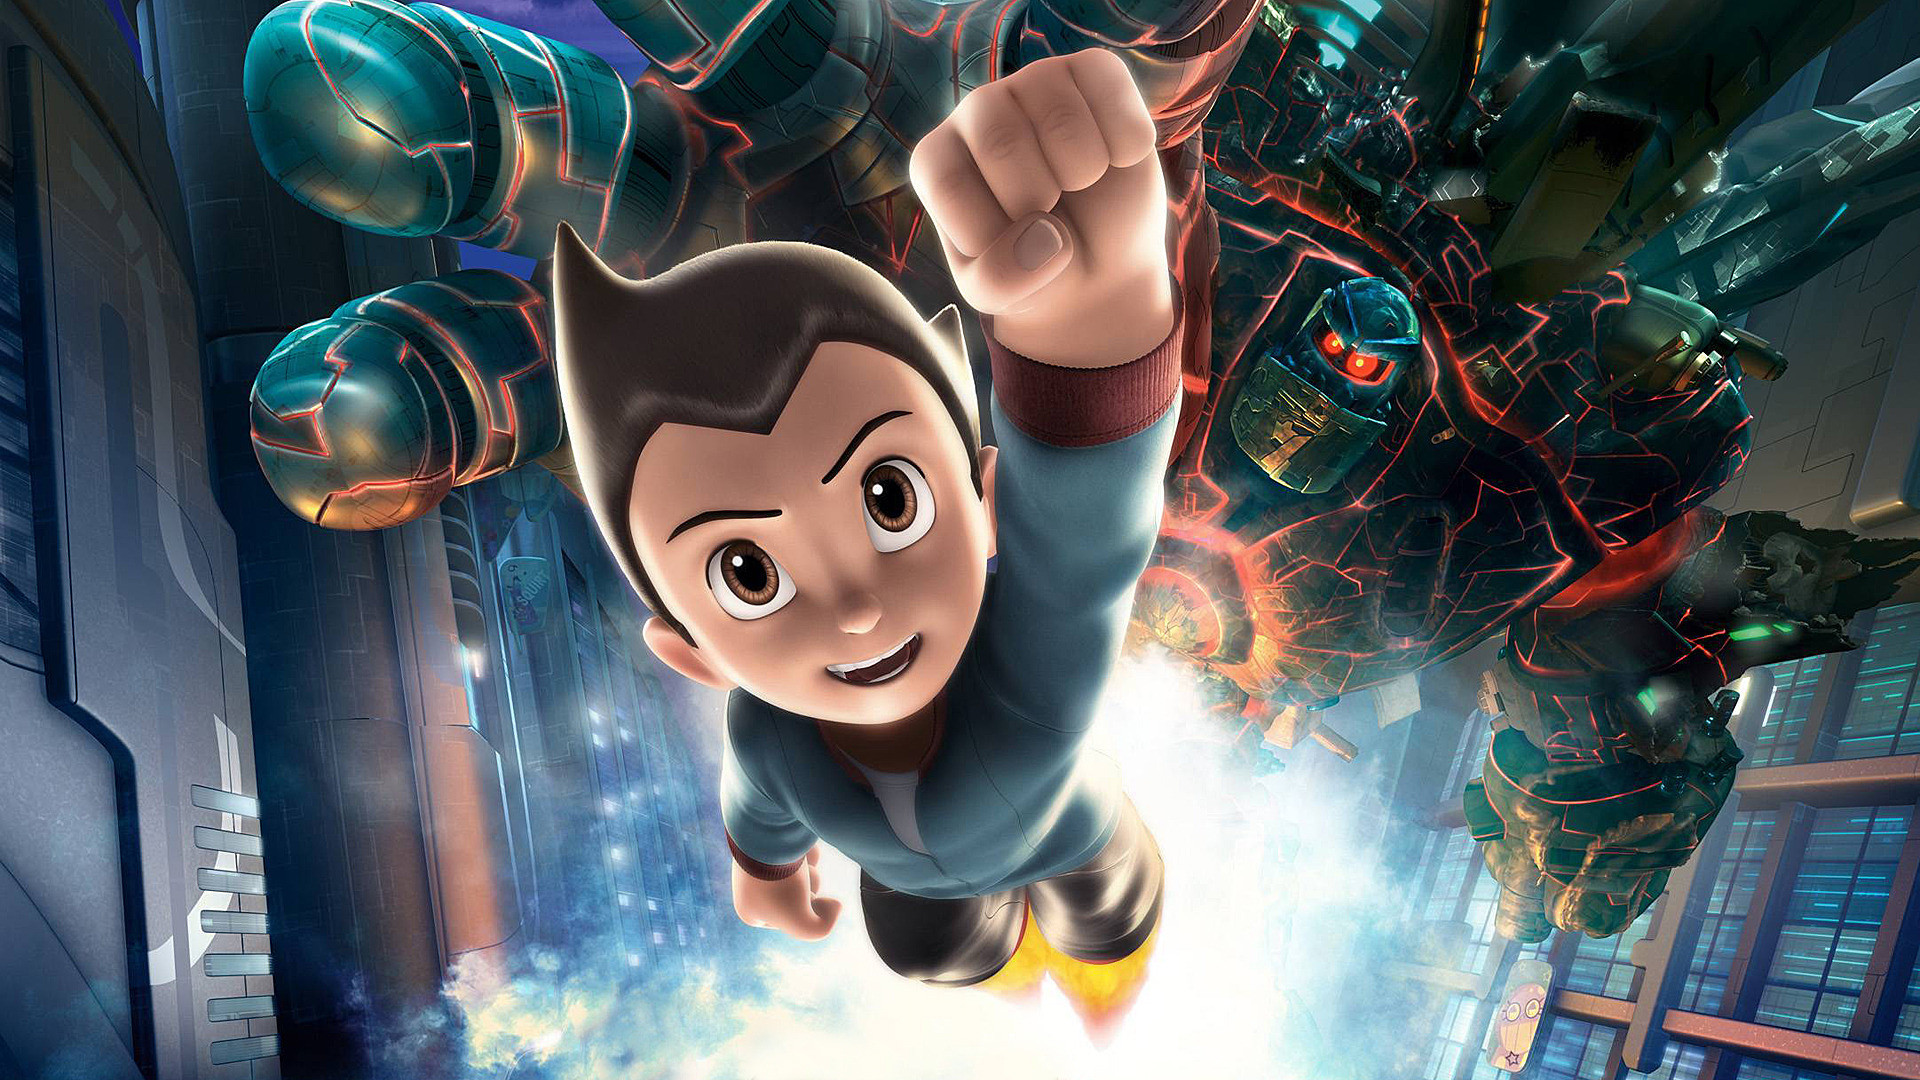 Astro Boy Wallpaper